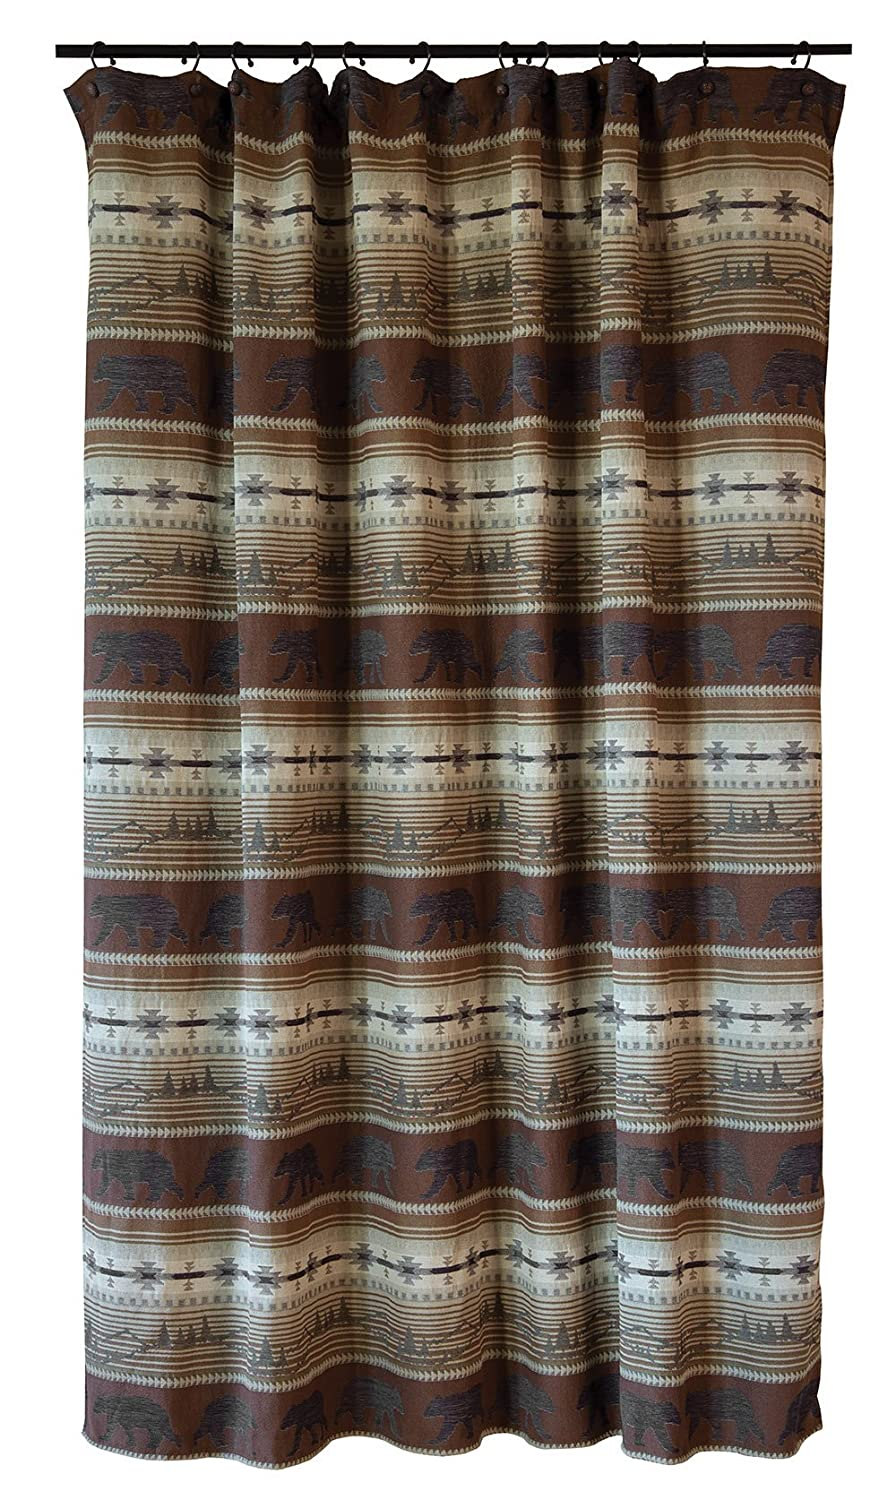 Carstens, Inc Rugged Earth Bear Collection Shower Curtain Brown Carstens Inc JB6803